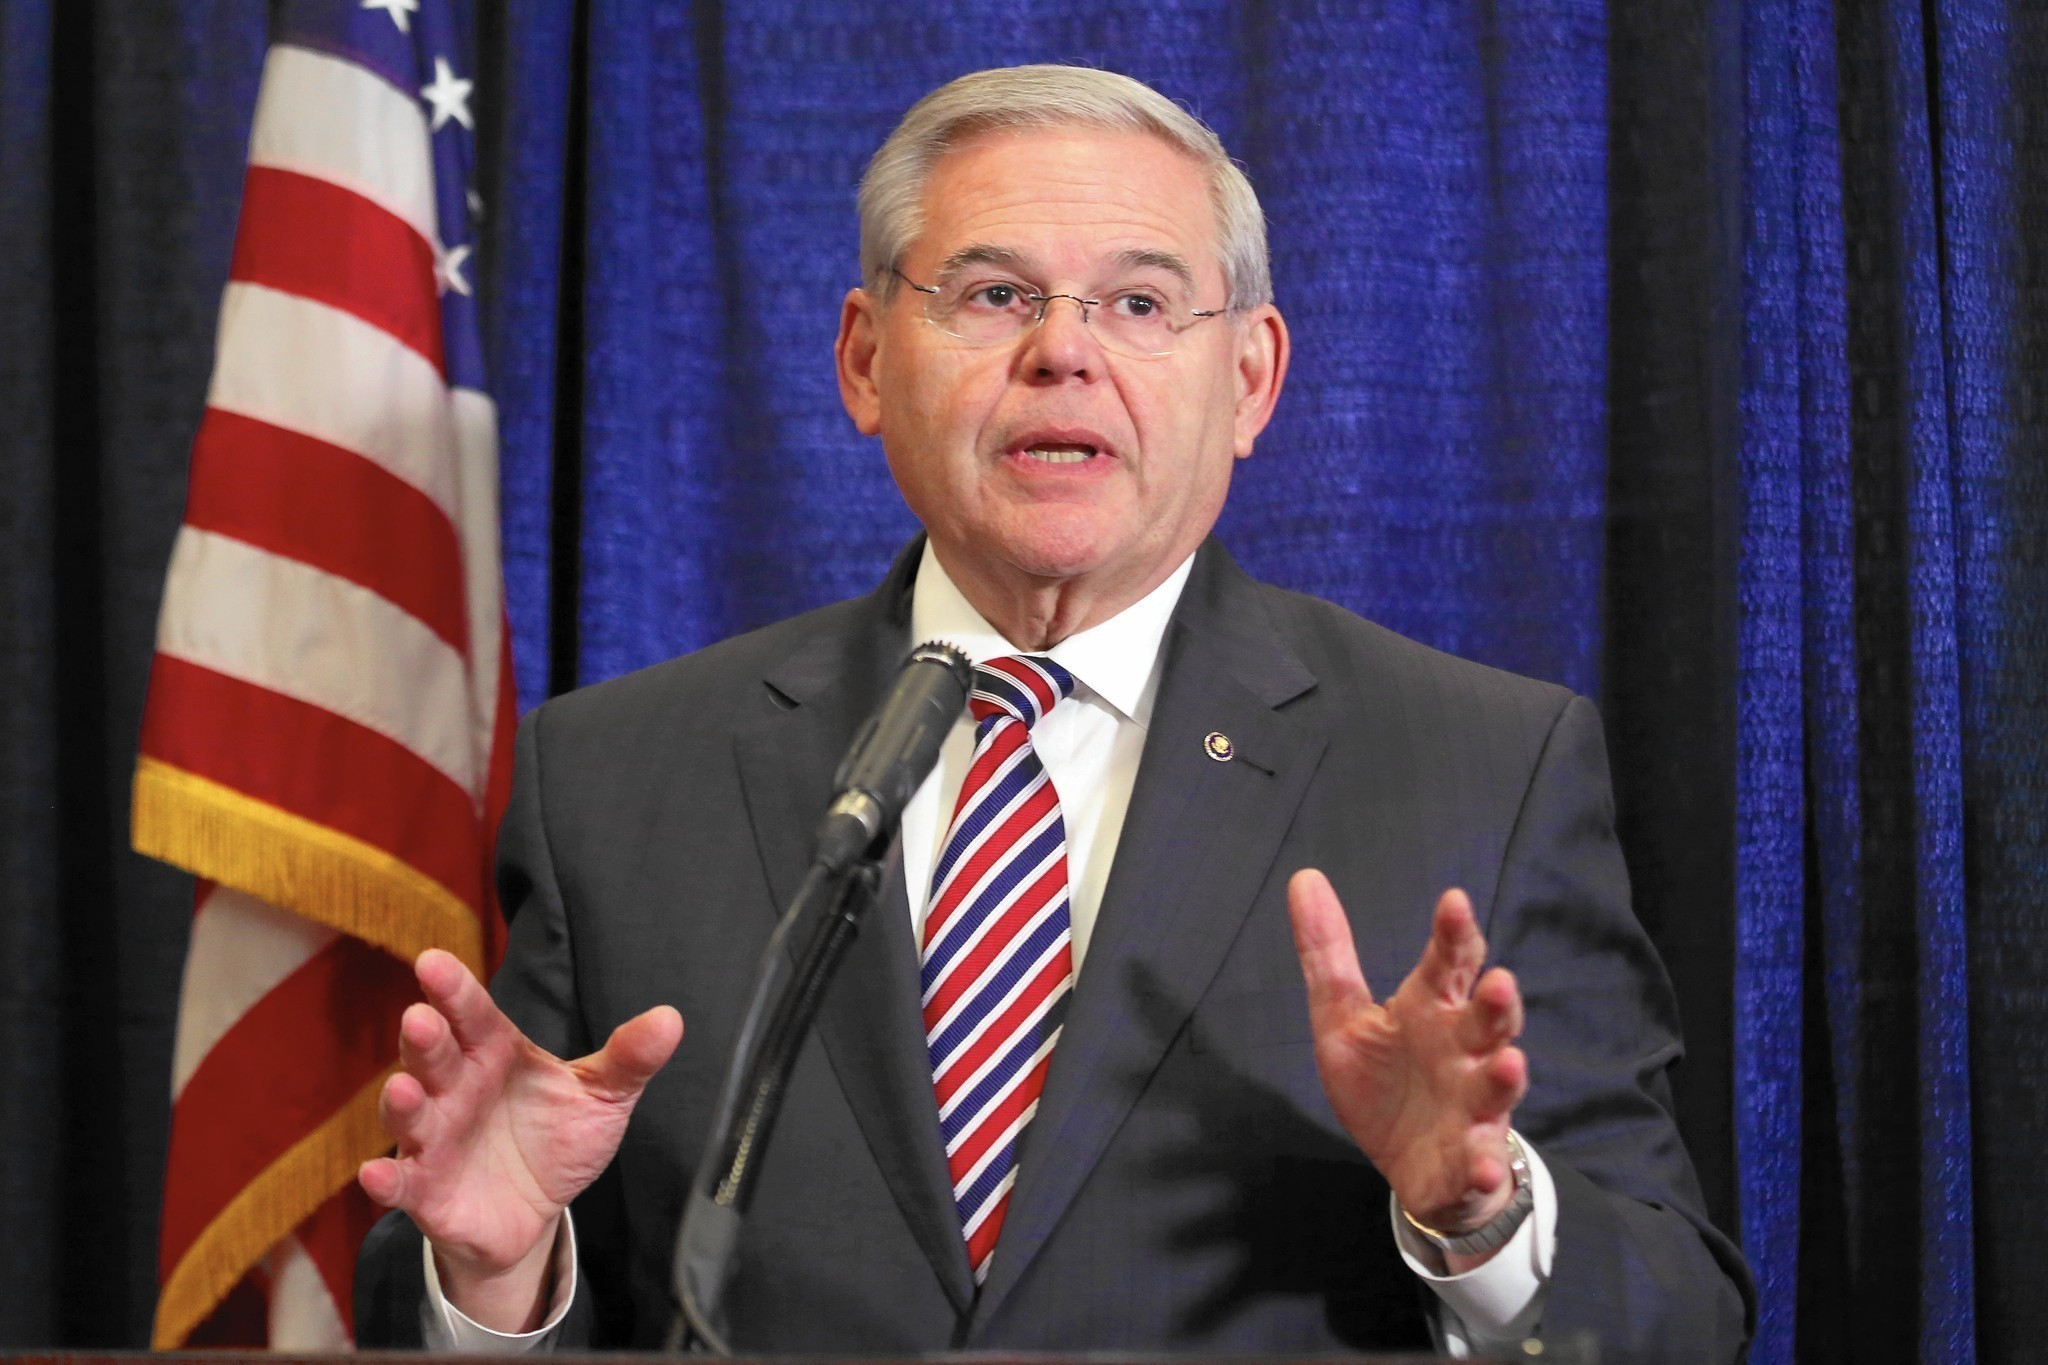 Sen. Robert Menendez, indicted on federal charges, still popular in hometown